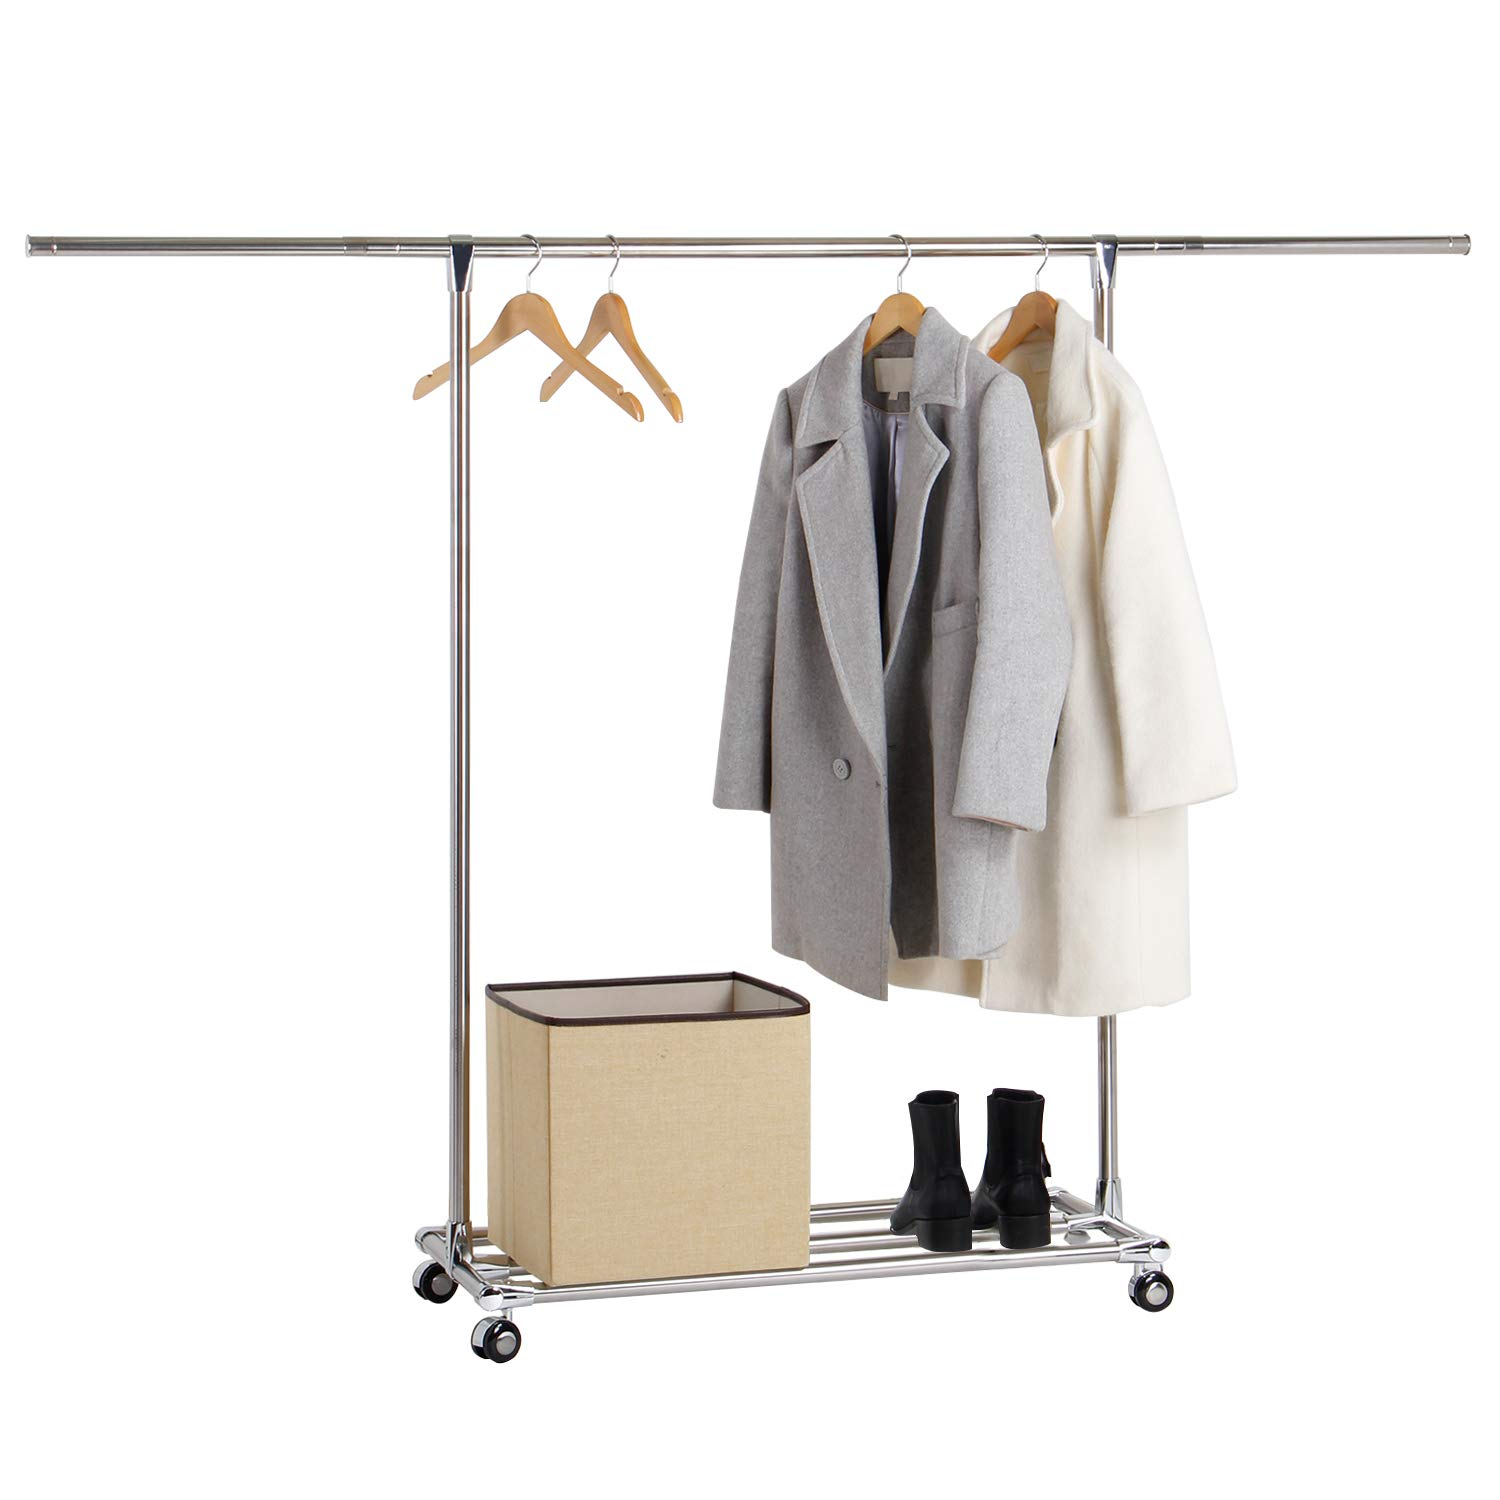 Lifewit Adjustable Clothes Rail Heavy Duty Garment Rail Rolling Clothing Rack Storage with Shoe Rack , Stainless Steel